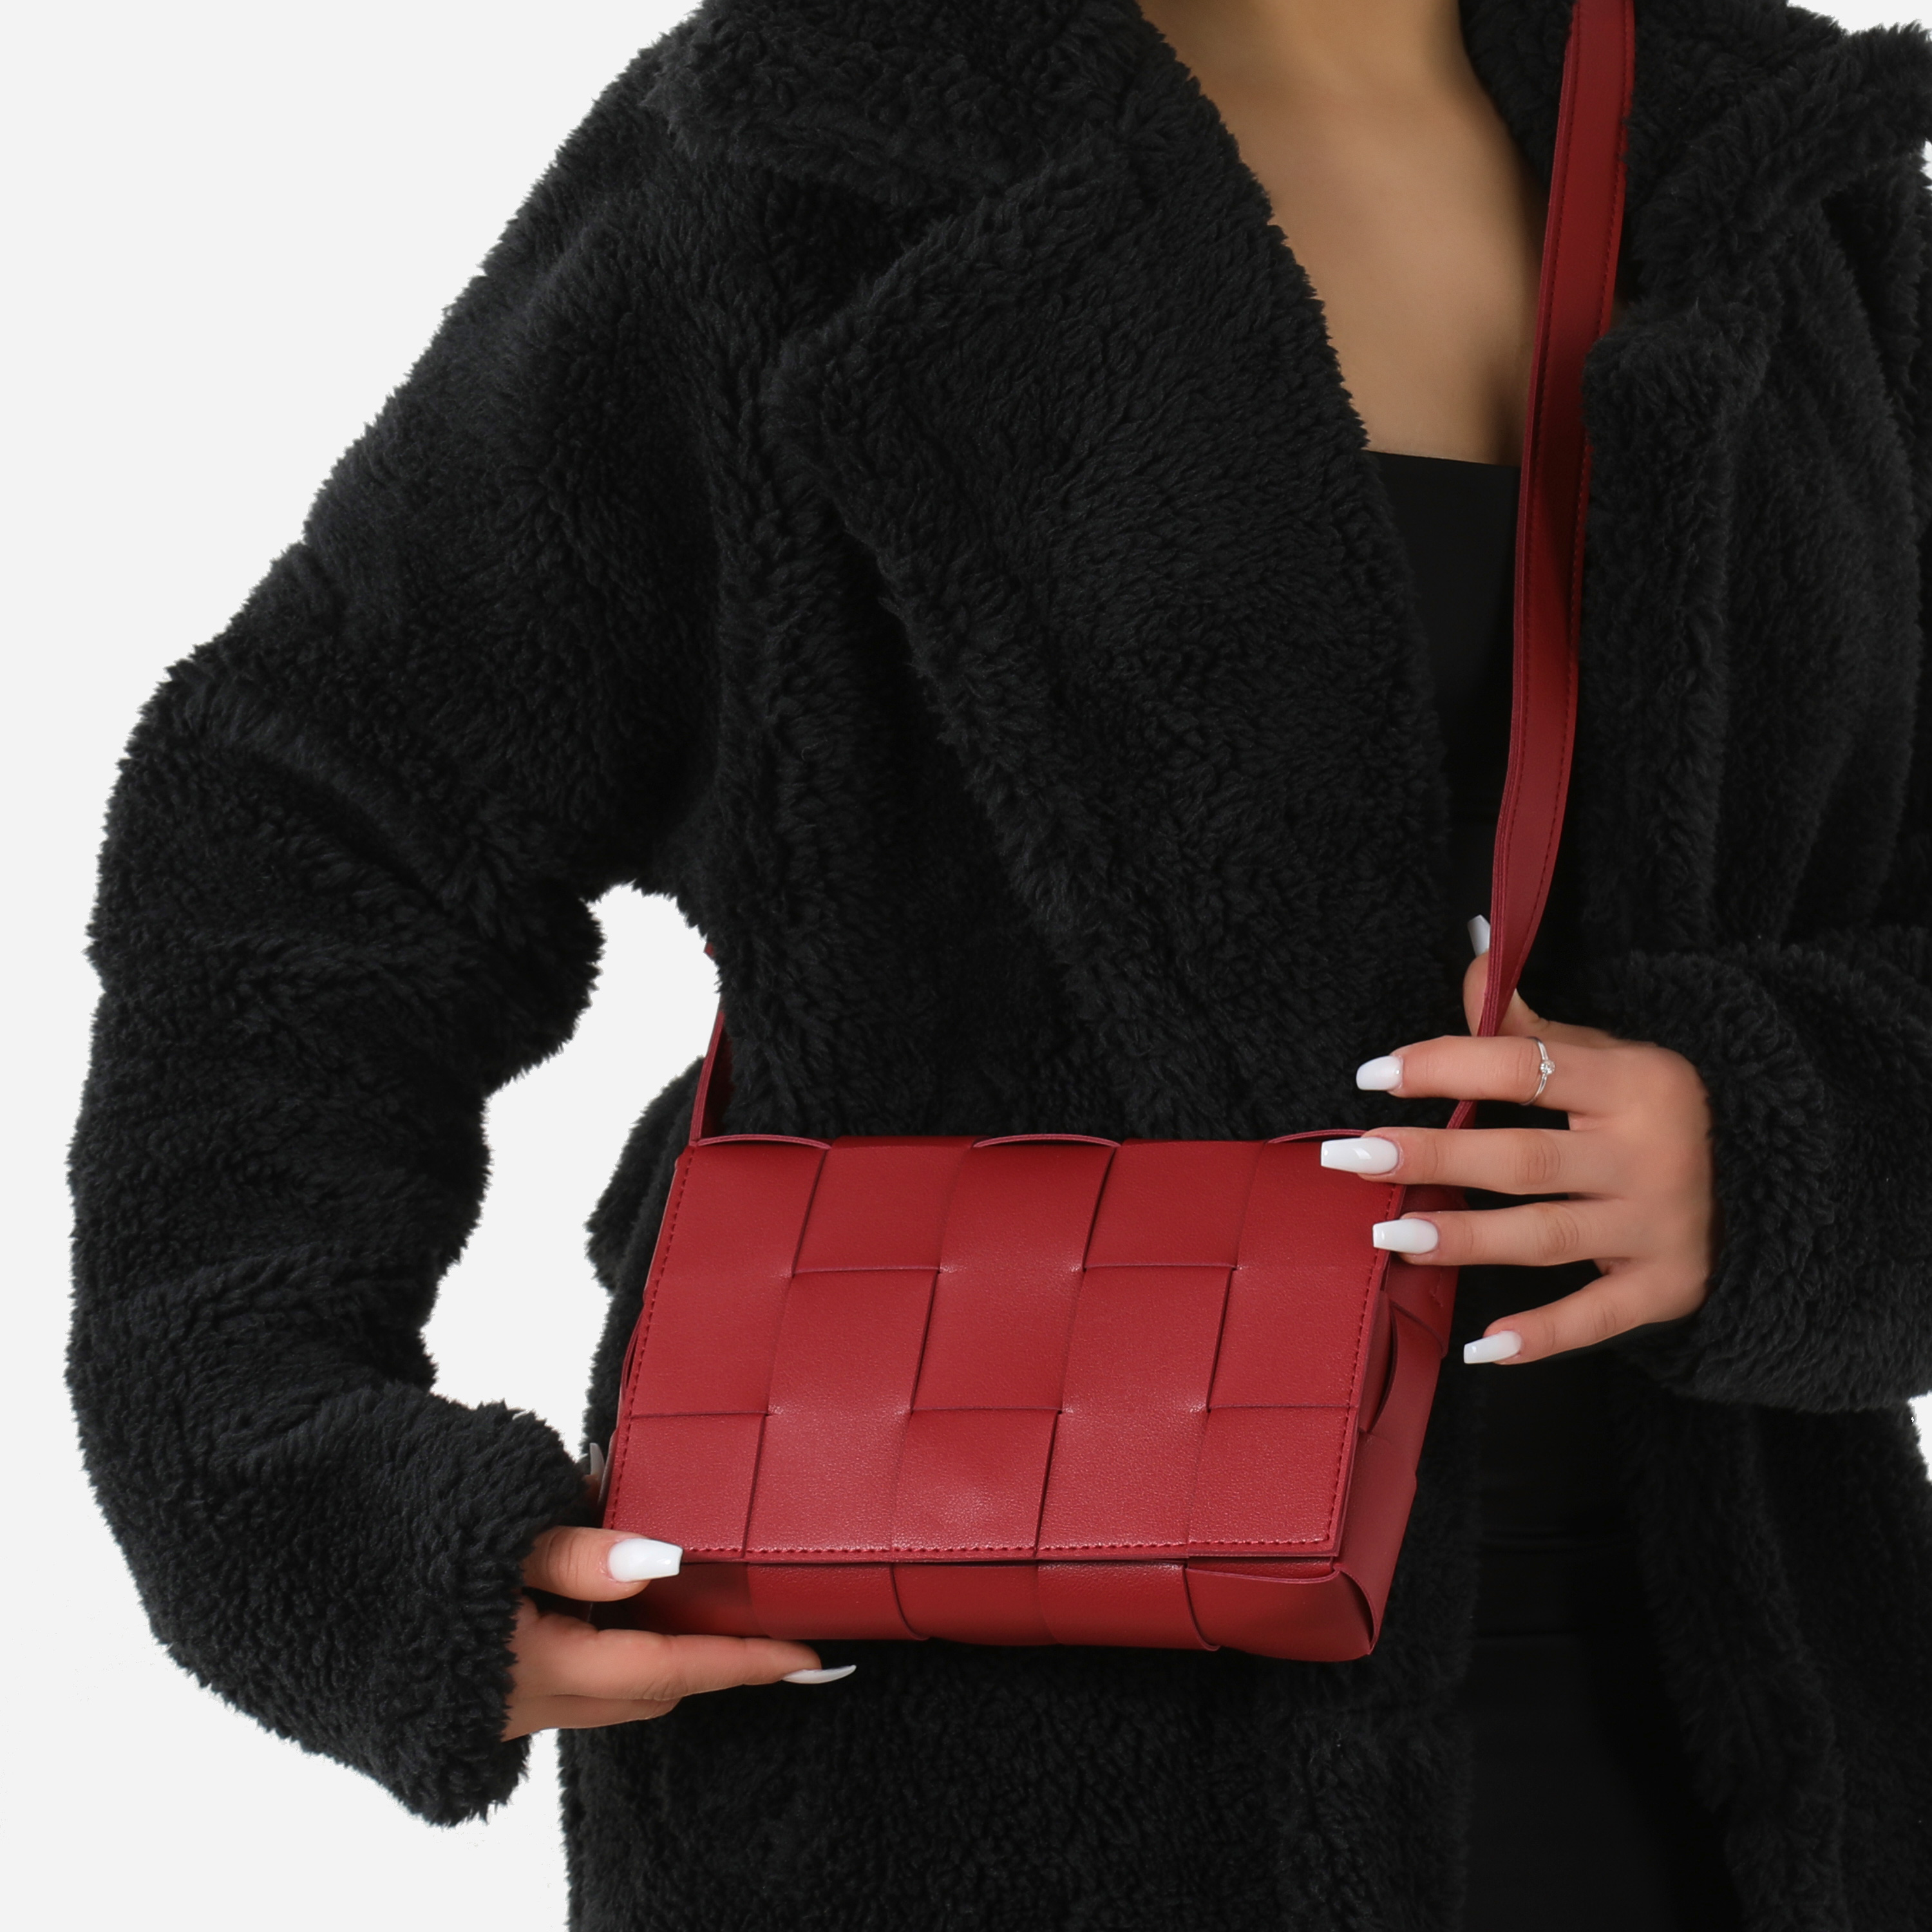 Woven Detail Square Clutch Bag In Red Faux Leather